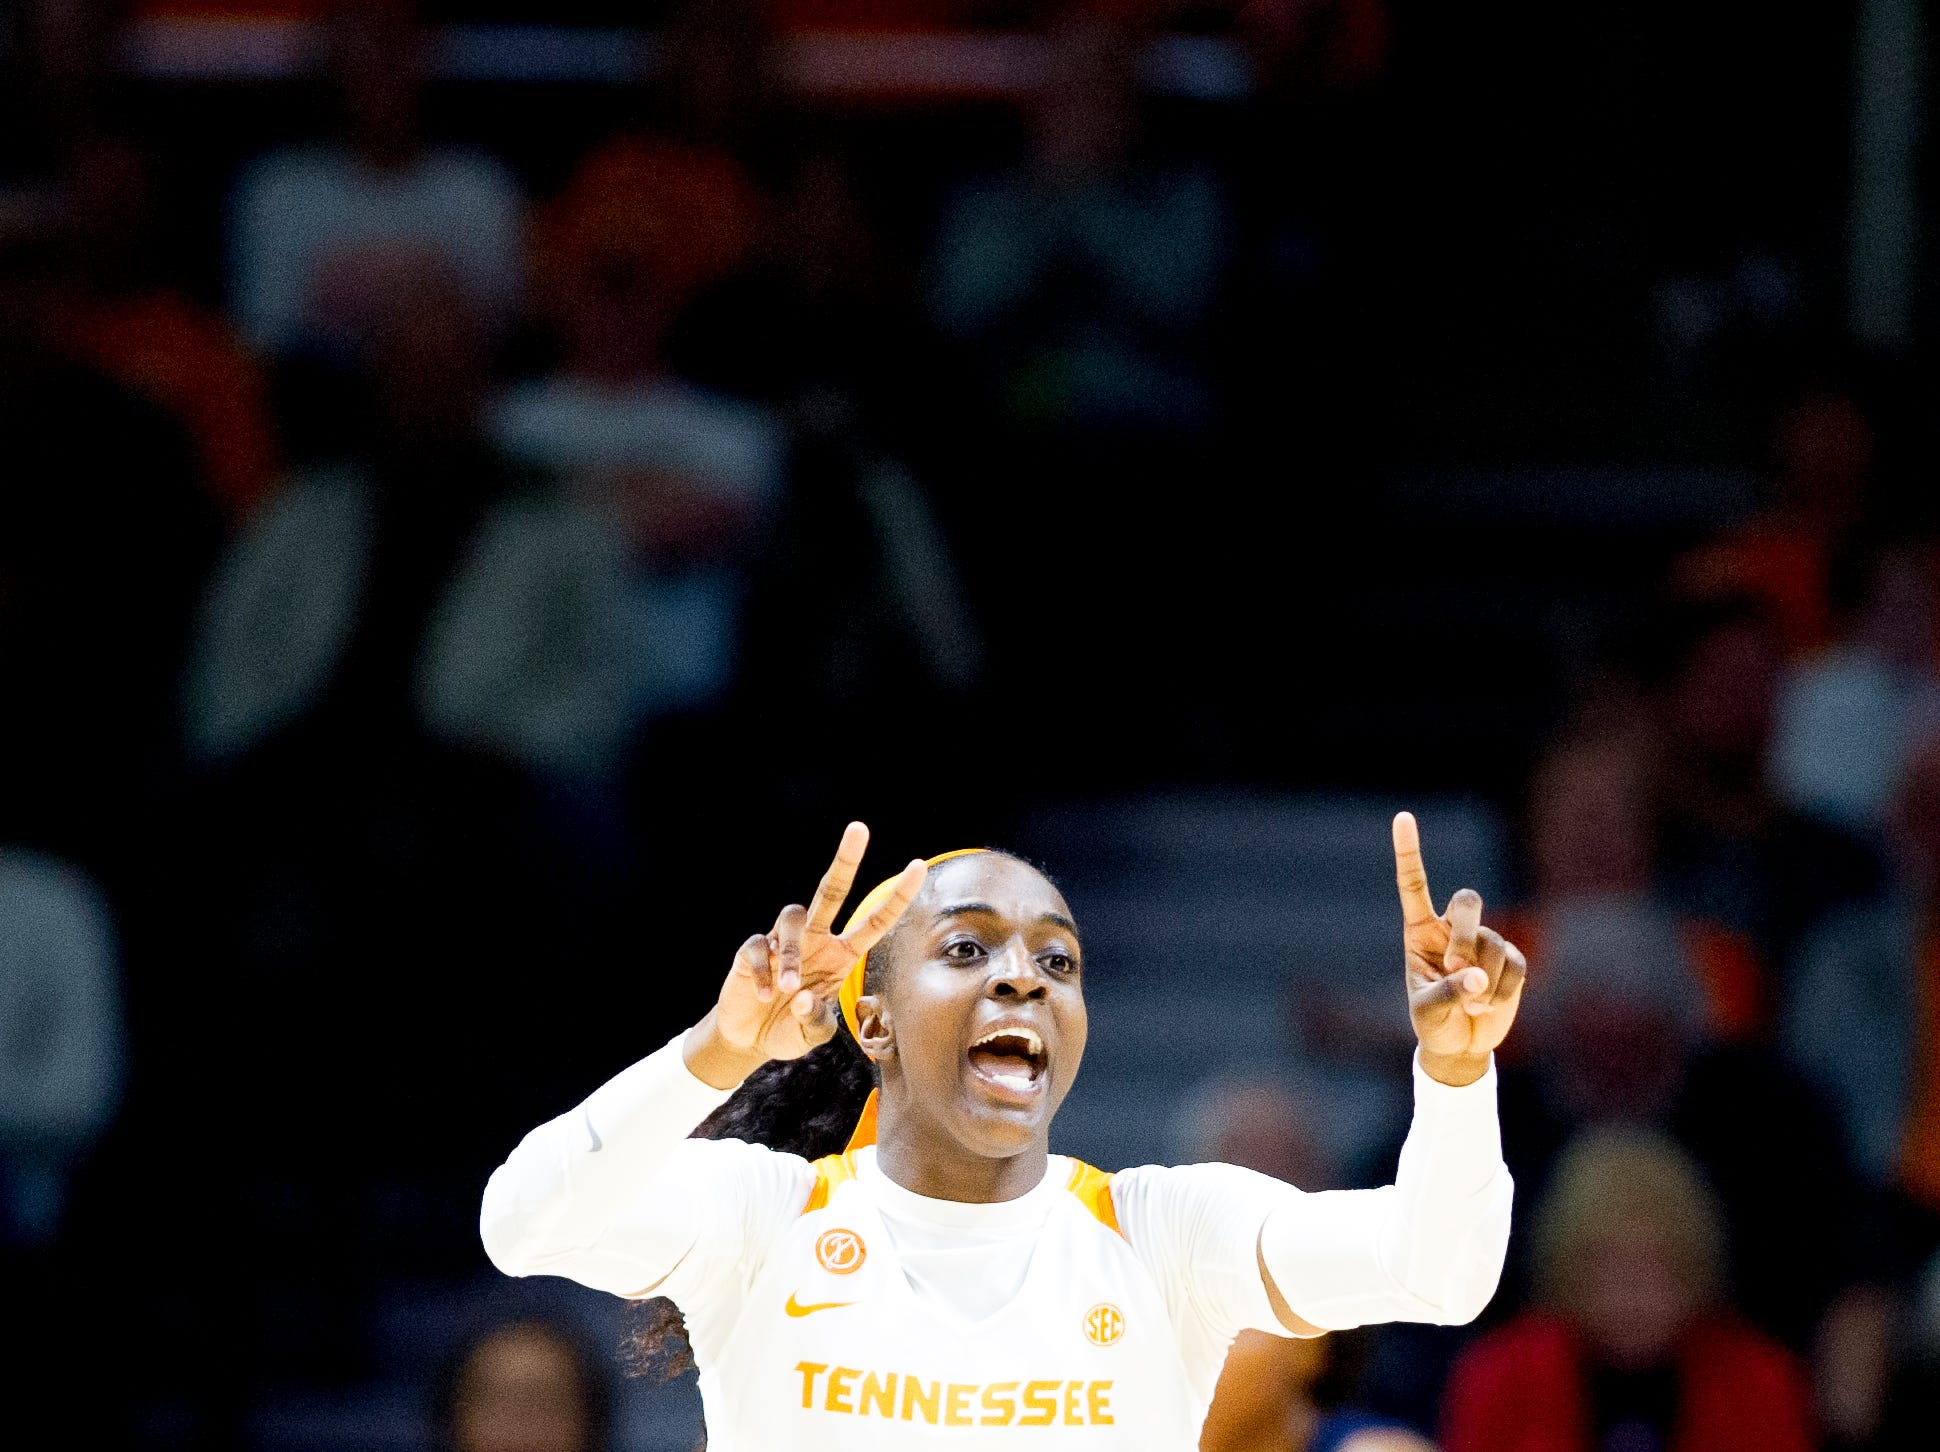 Tennessee guard/forward Meme Jackson (10) calls down the court to teammates during a game between the Tennessee Lady Vols and Murray State at Thompson-Boling Arena in Knoxville, Tennessee on Friday, December 28, 2018.